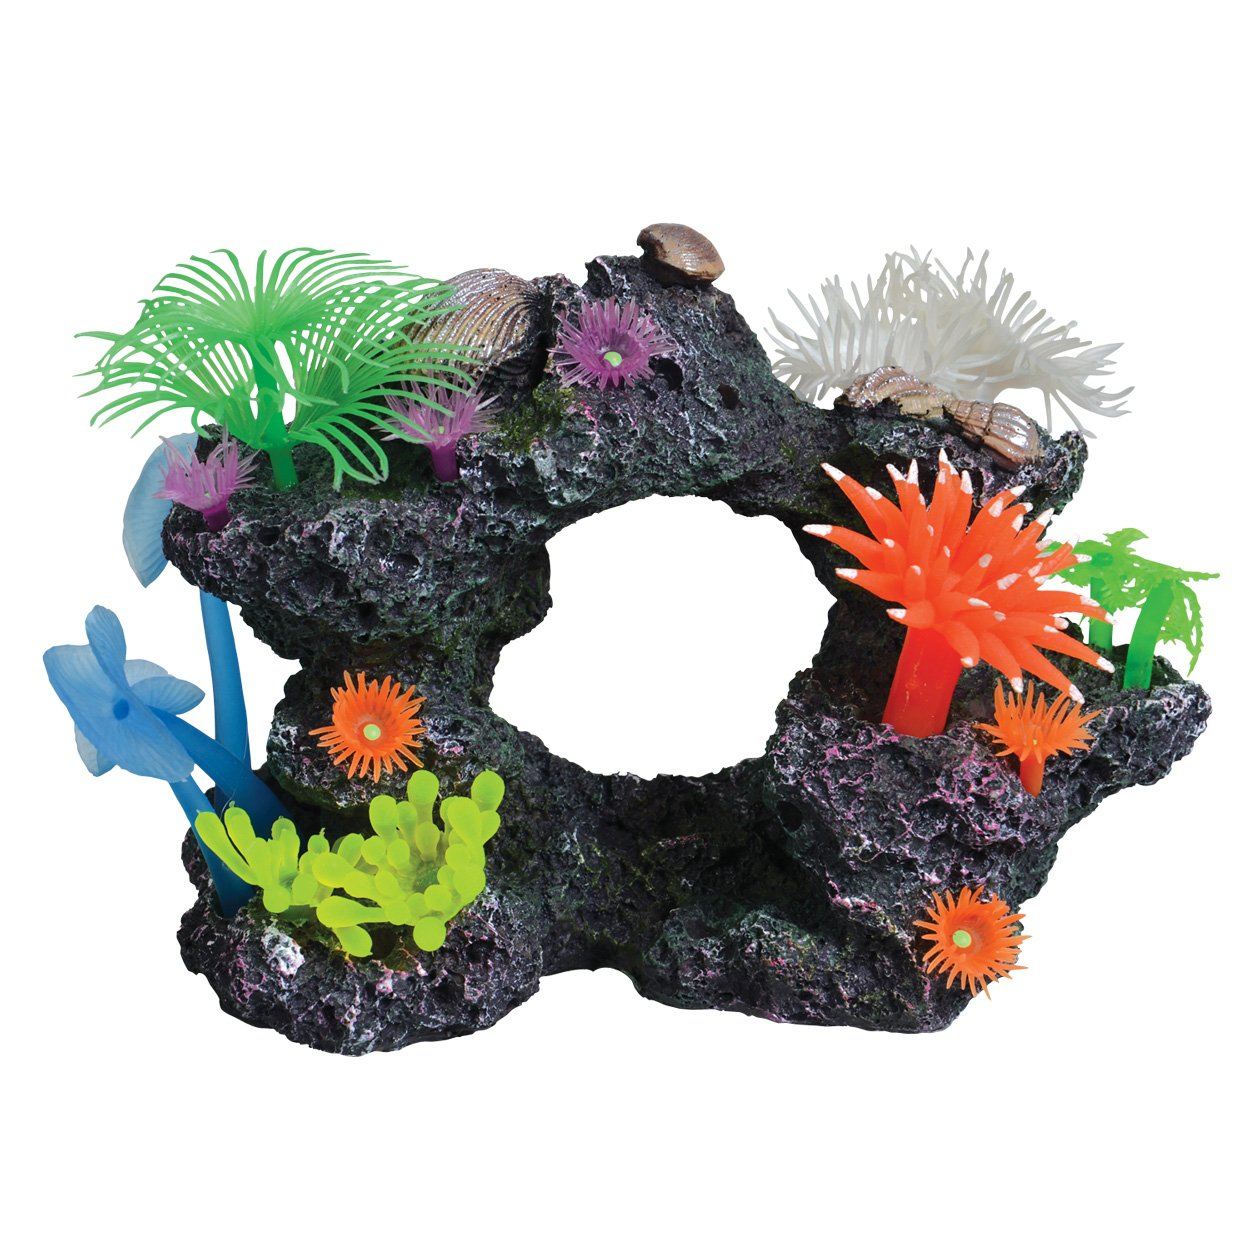 Underwater Treasures 53441 Reef Style D Scenery